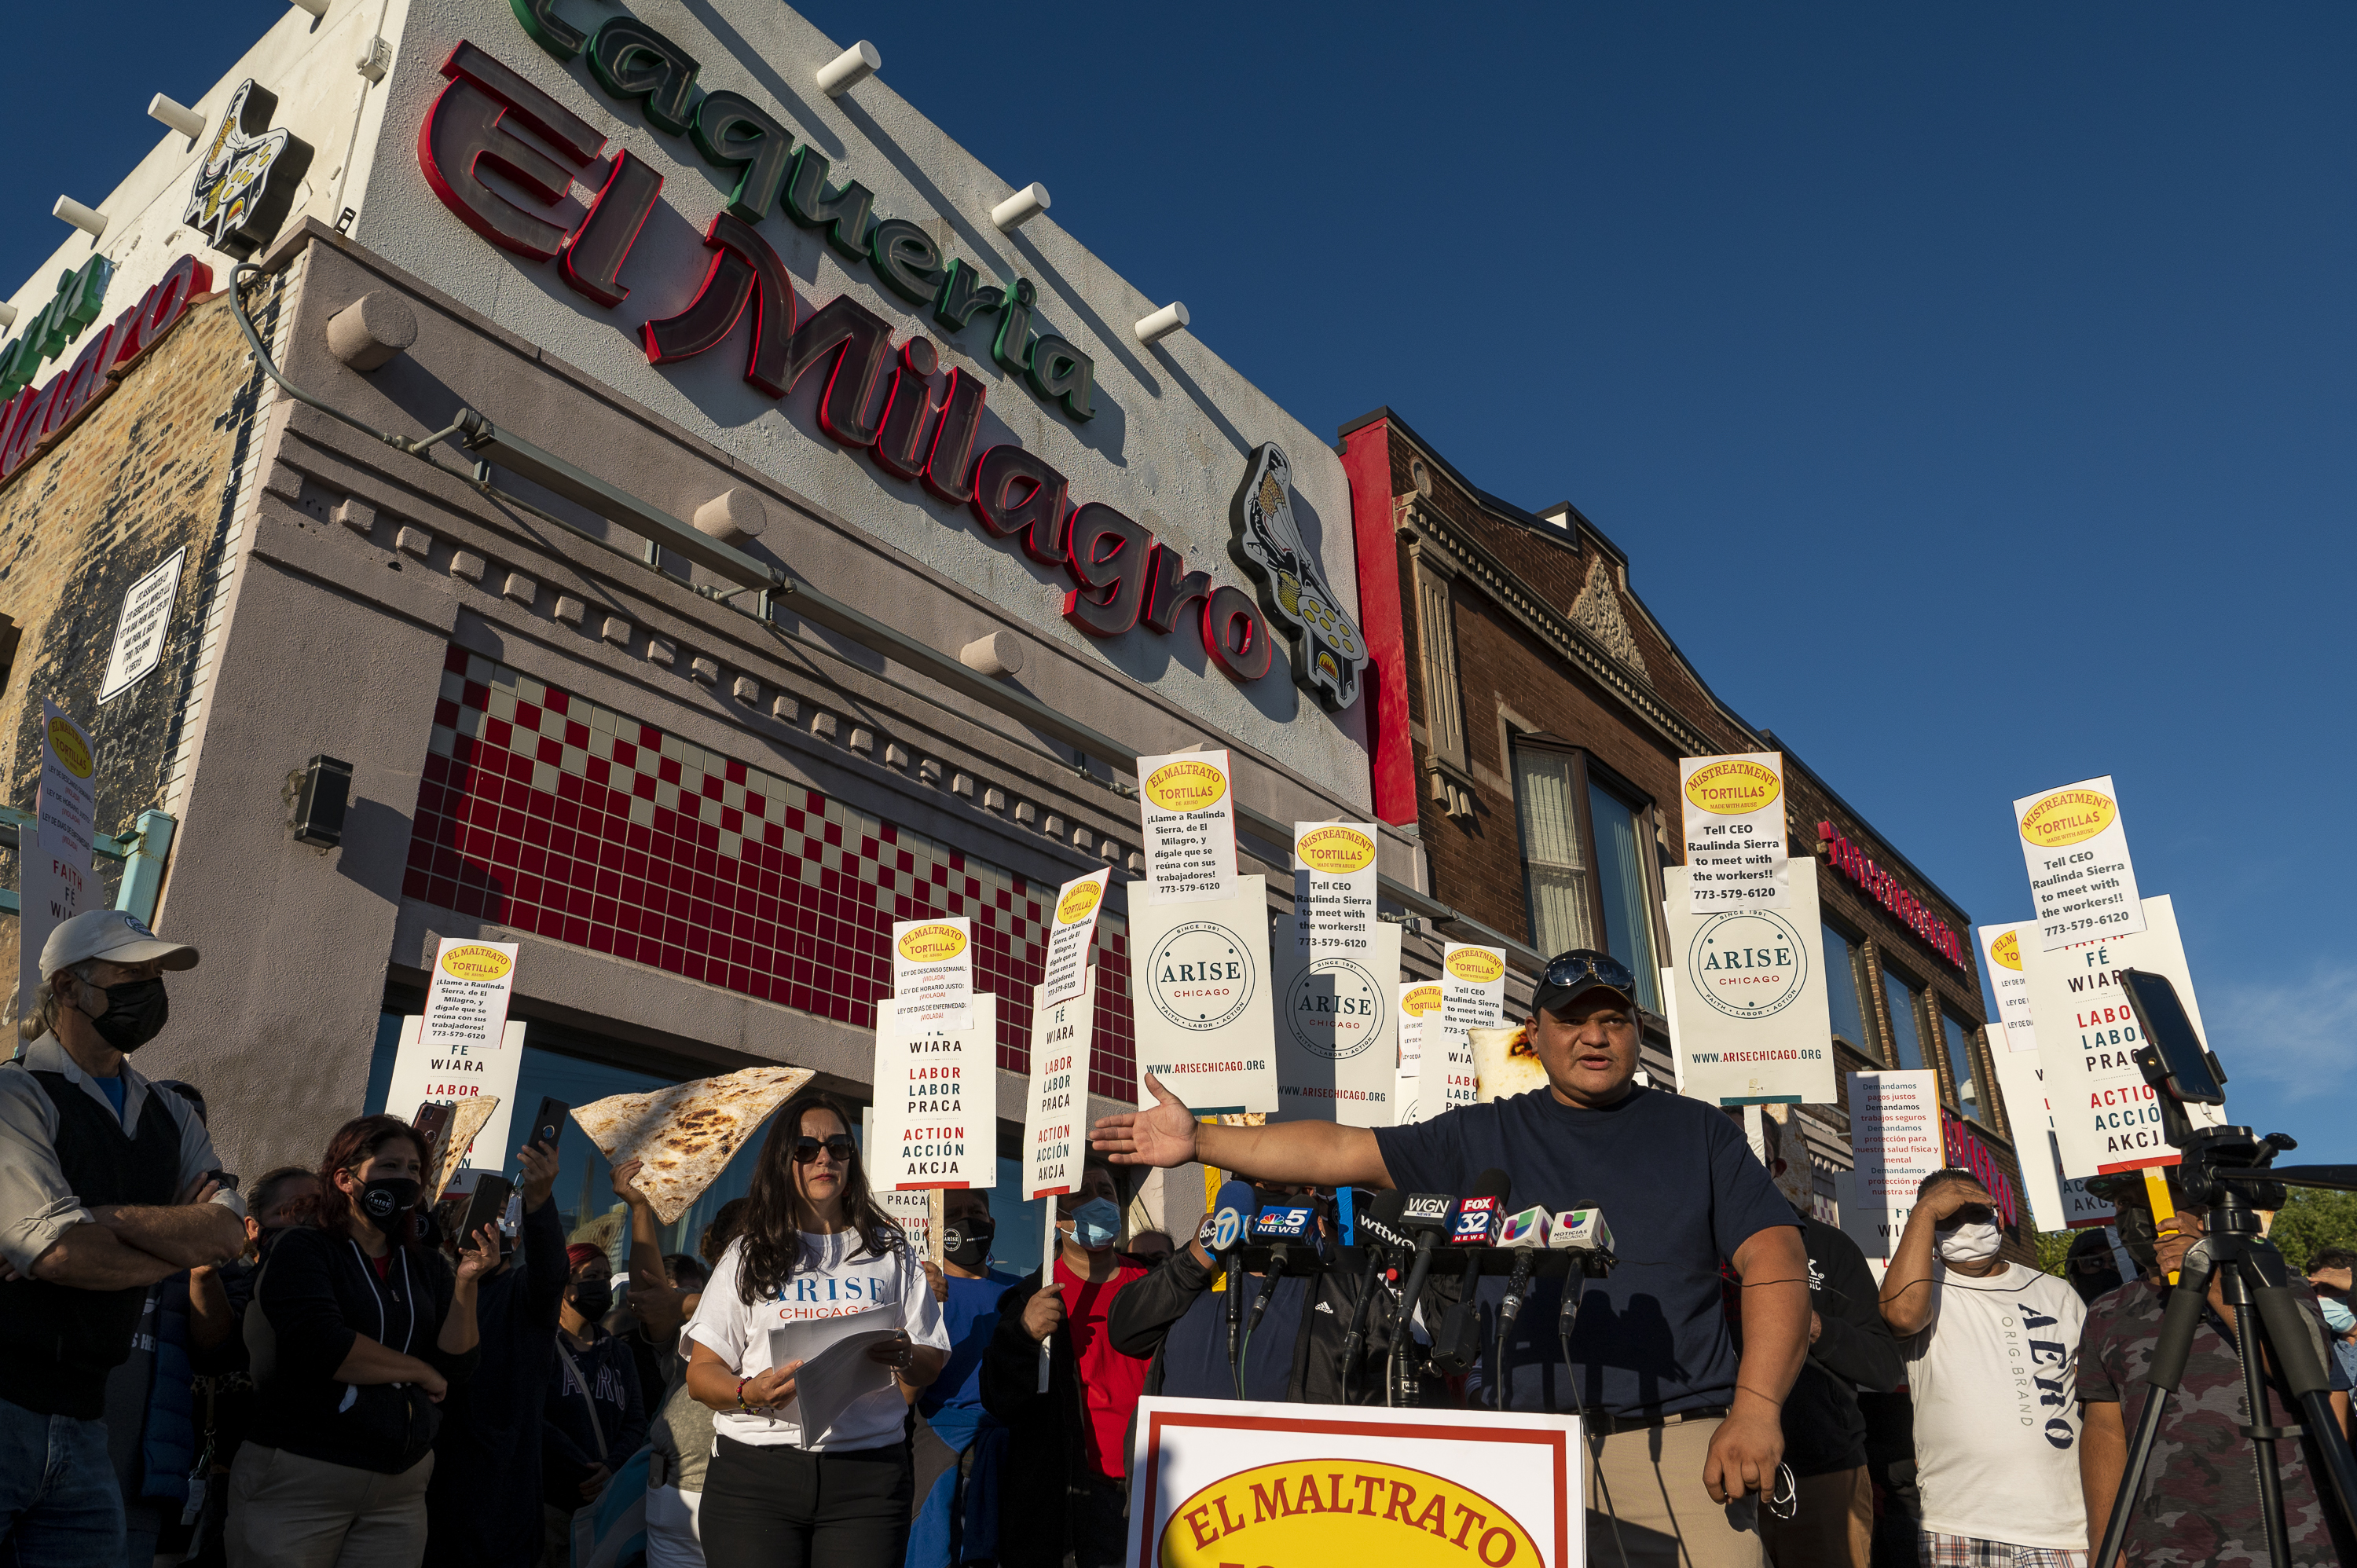 Luis Olivo, an El Milagro employee, worker along with other El Milagro workers from 21st Street and 31st Street speak to reporters in front of the El Milagro headquarters at 3050 W. 26th St. in the Little Village neighborhood, Thursday, Sept. 24, 2021. Workers walked off the job at both the Little Village and Pilsen production facilities over alleged poor working conditions.